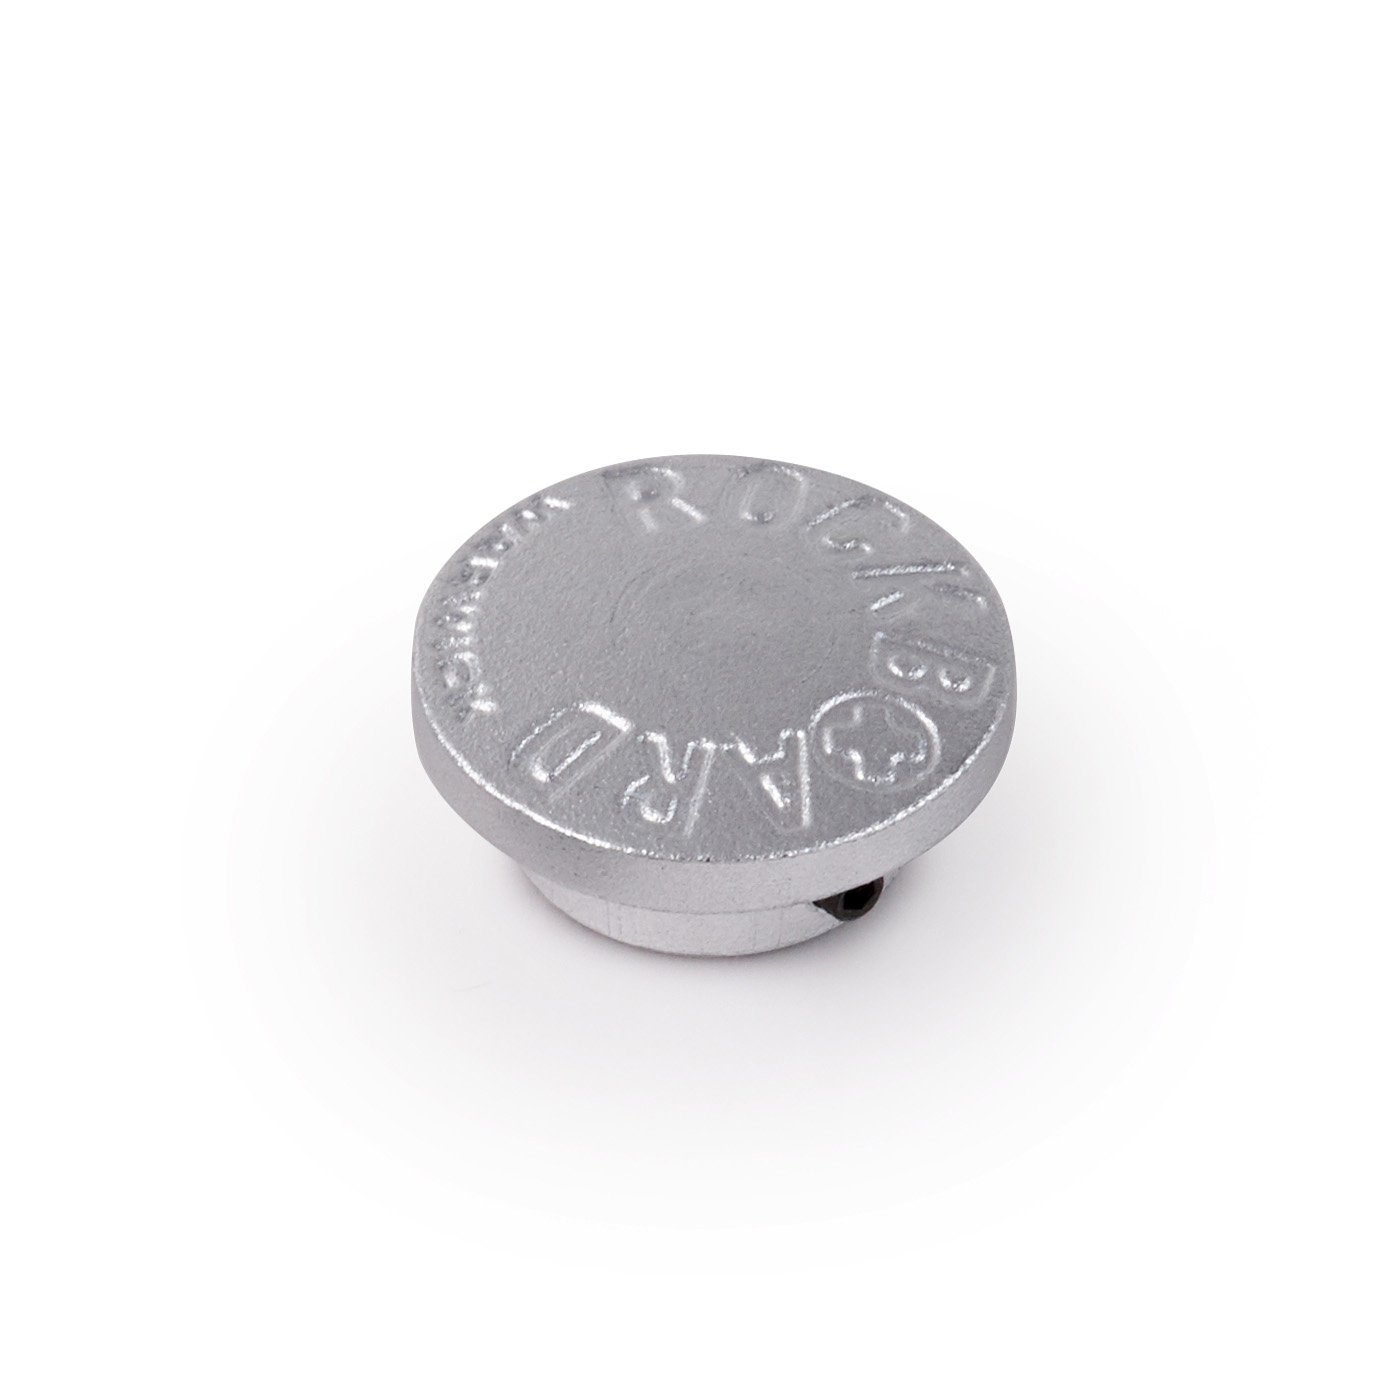 StomPete Footswitch Topper, 3 pcs. - Silver